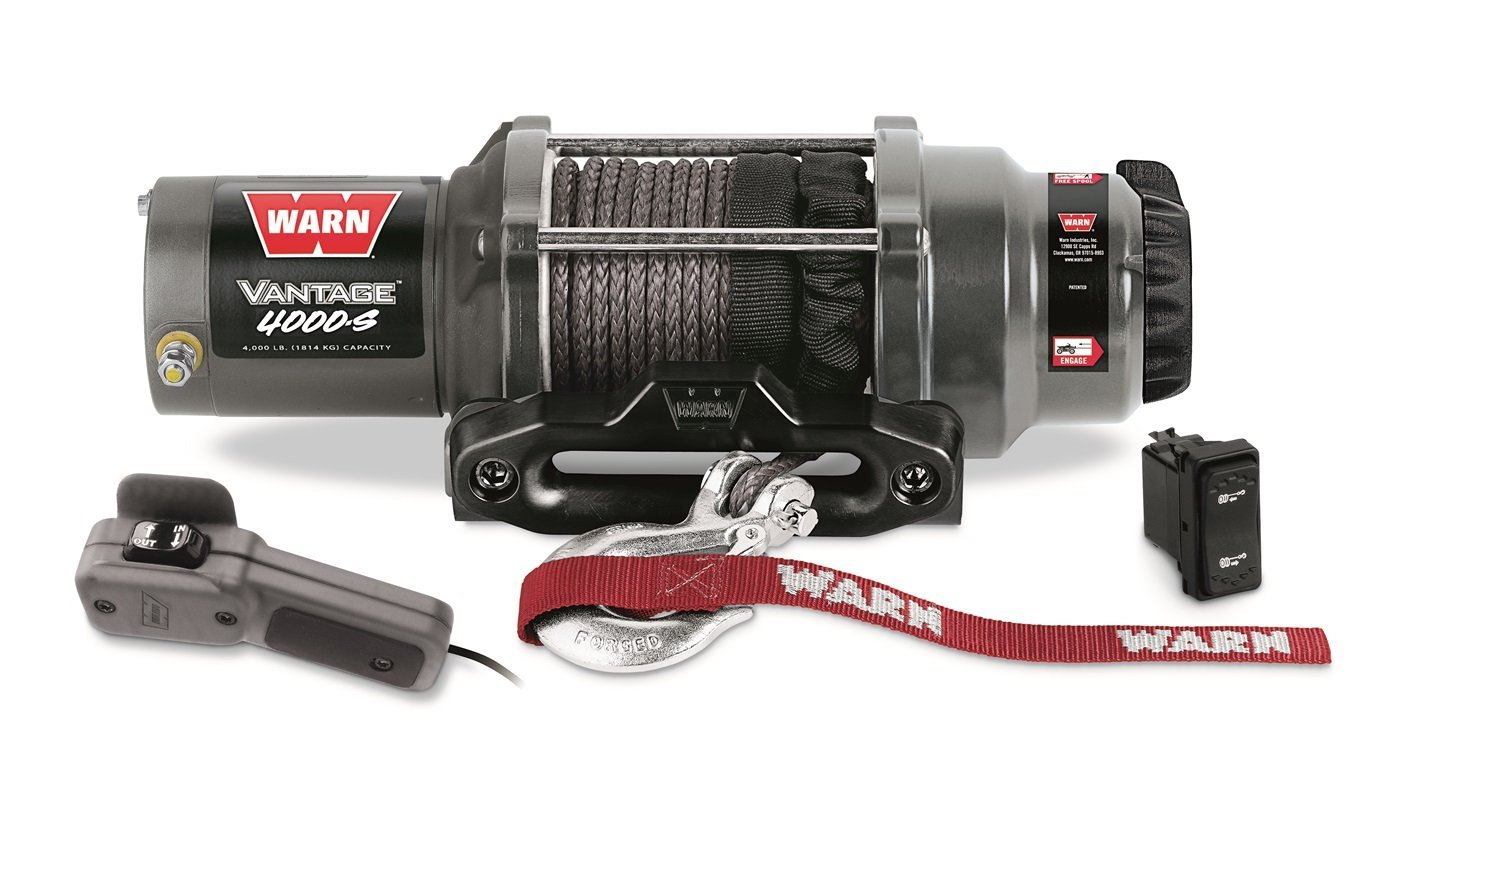 8A22043 Warn Vantage 3000 Winch Wiring Diagram | Wiring ... on para ordnance p14 diagram, venom winch review, venom 5000 lbs wiring-diagram, voyager xp wiring diagram, venom winch cable, 2011 ranger wiring diagram, venom winch remote control, polaris ranger wiring diagram, heavy duty reversing contactor wiring diagram, 9617 carling switch wiring diagram, tusk wiring diagram,